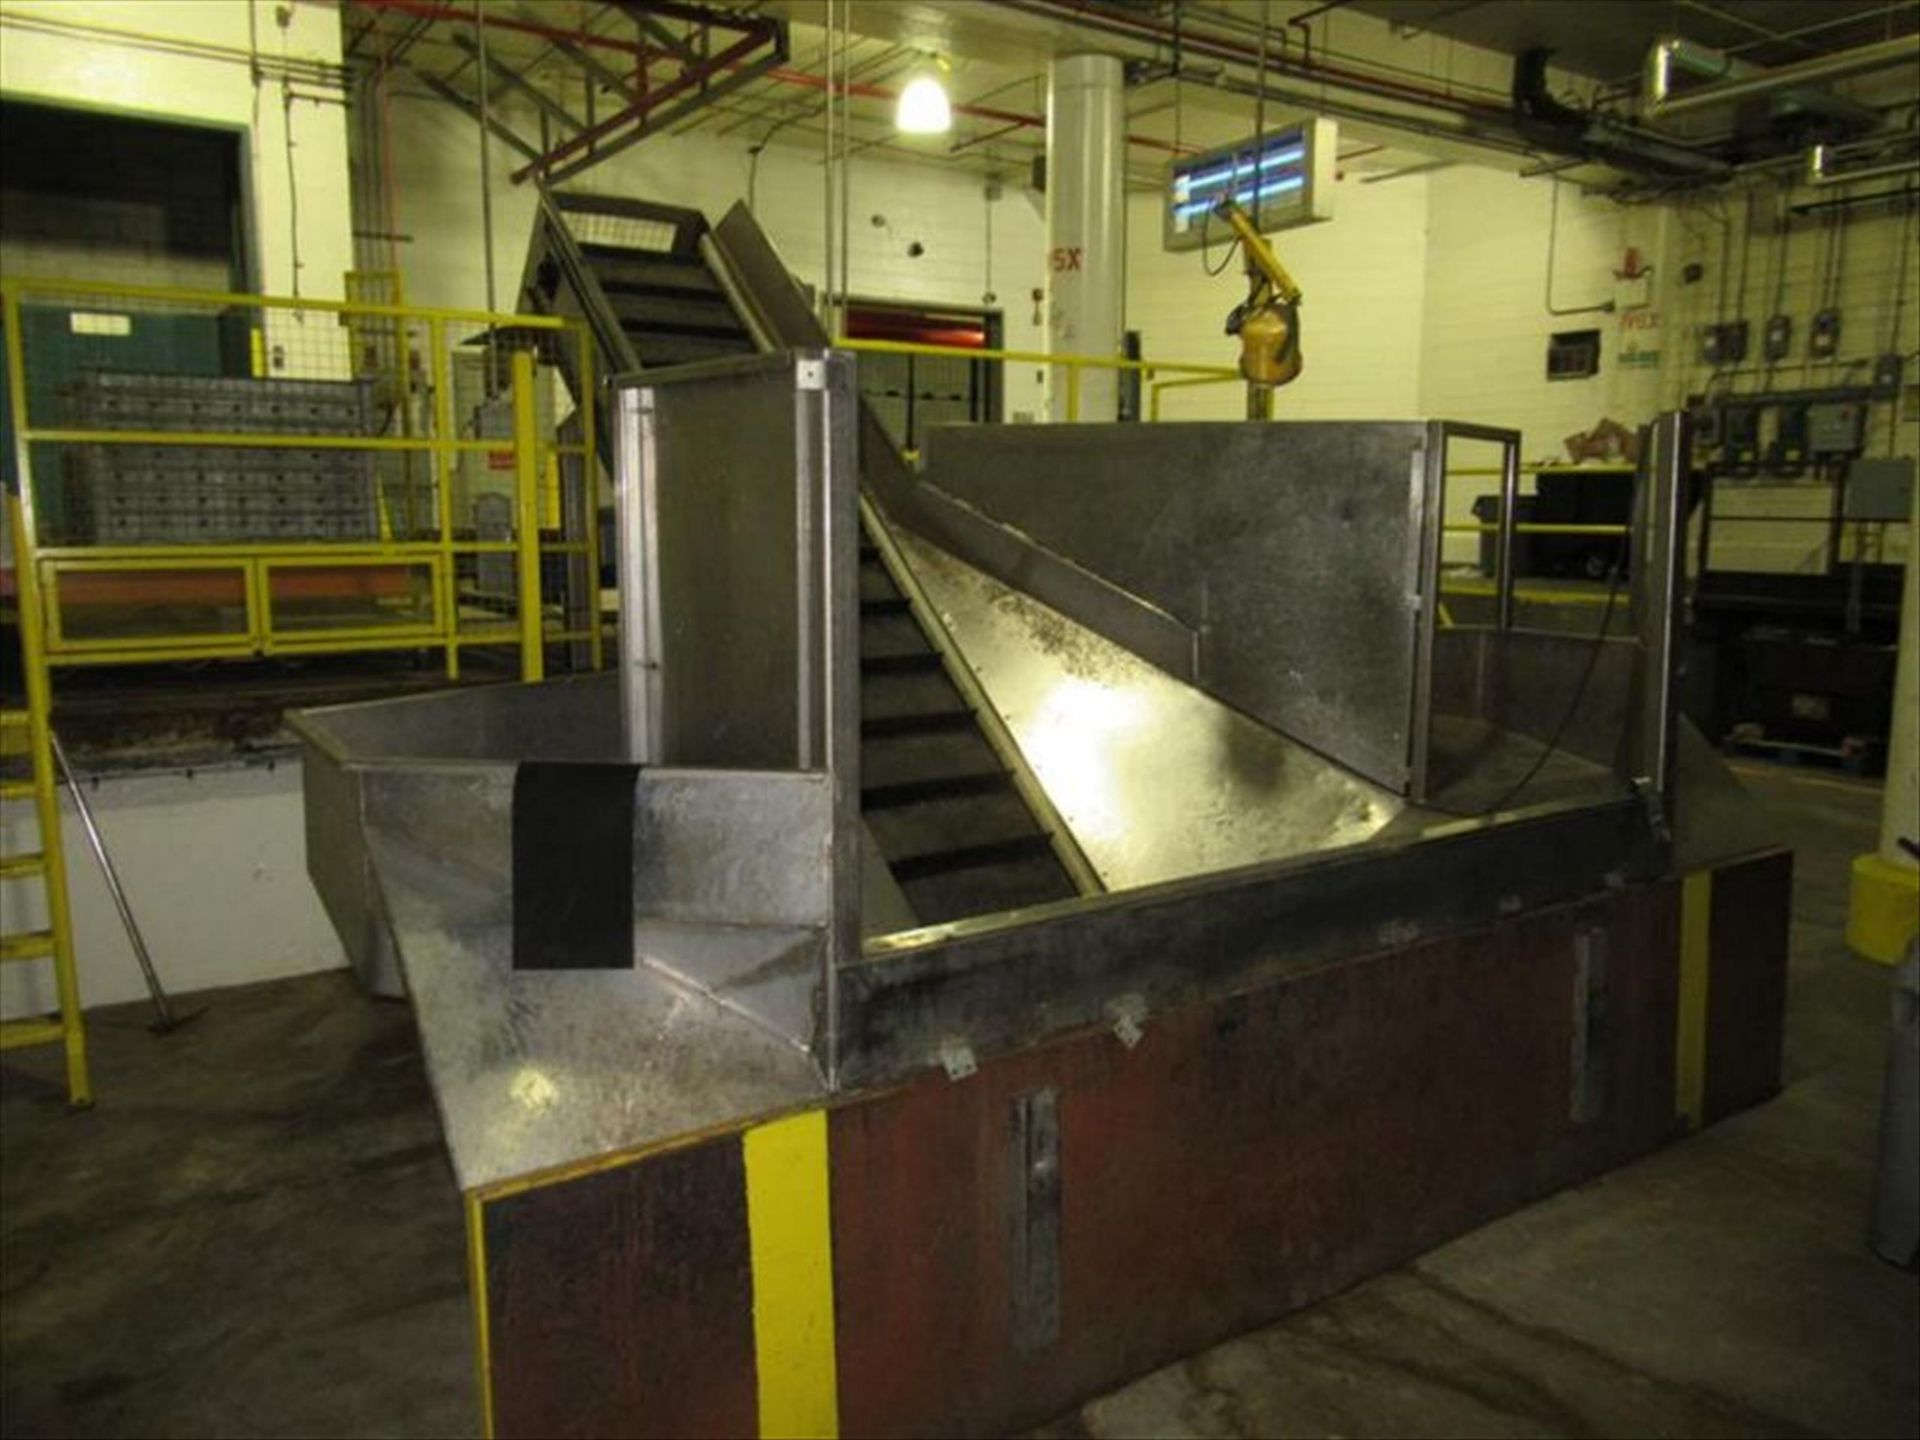 Lot 150 - Vegetable stainless receiving hopper conveyor bunker type, approx 10 ft w x 24 in h x 4 ft deep